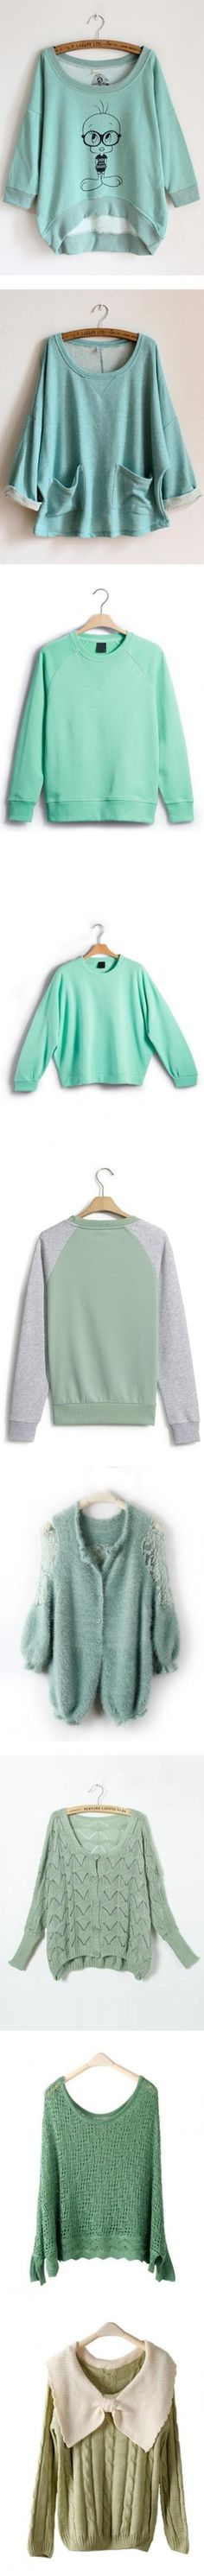 """""""Sweetshirt?Sweater?which one you like best?"""" by udobuy on Polyvore"""